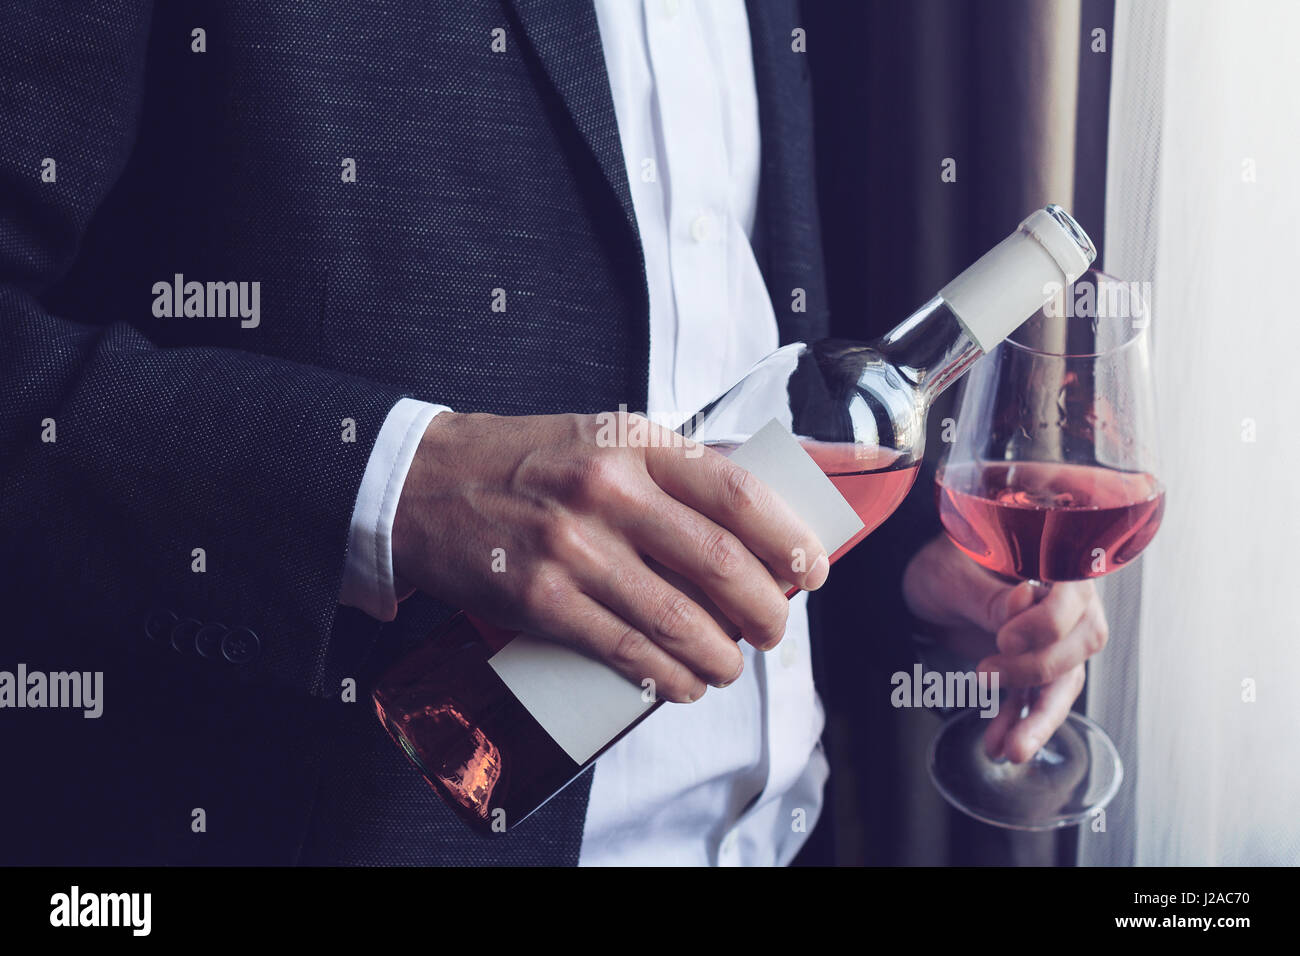 Horizontal close up of Caucasian man in black suit and white shirt pouring rose wine into a tall glass from a bottle - Stock Image